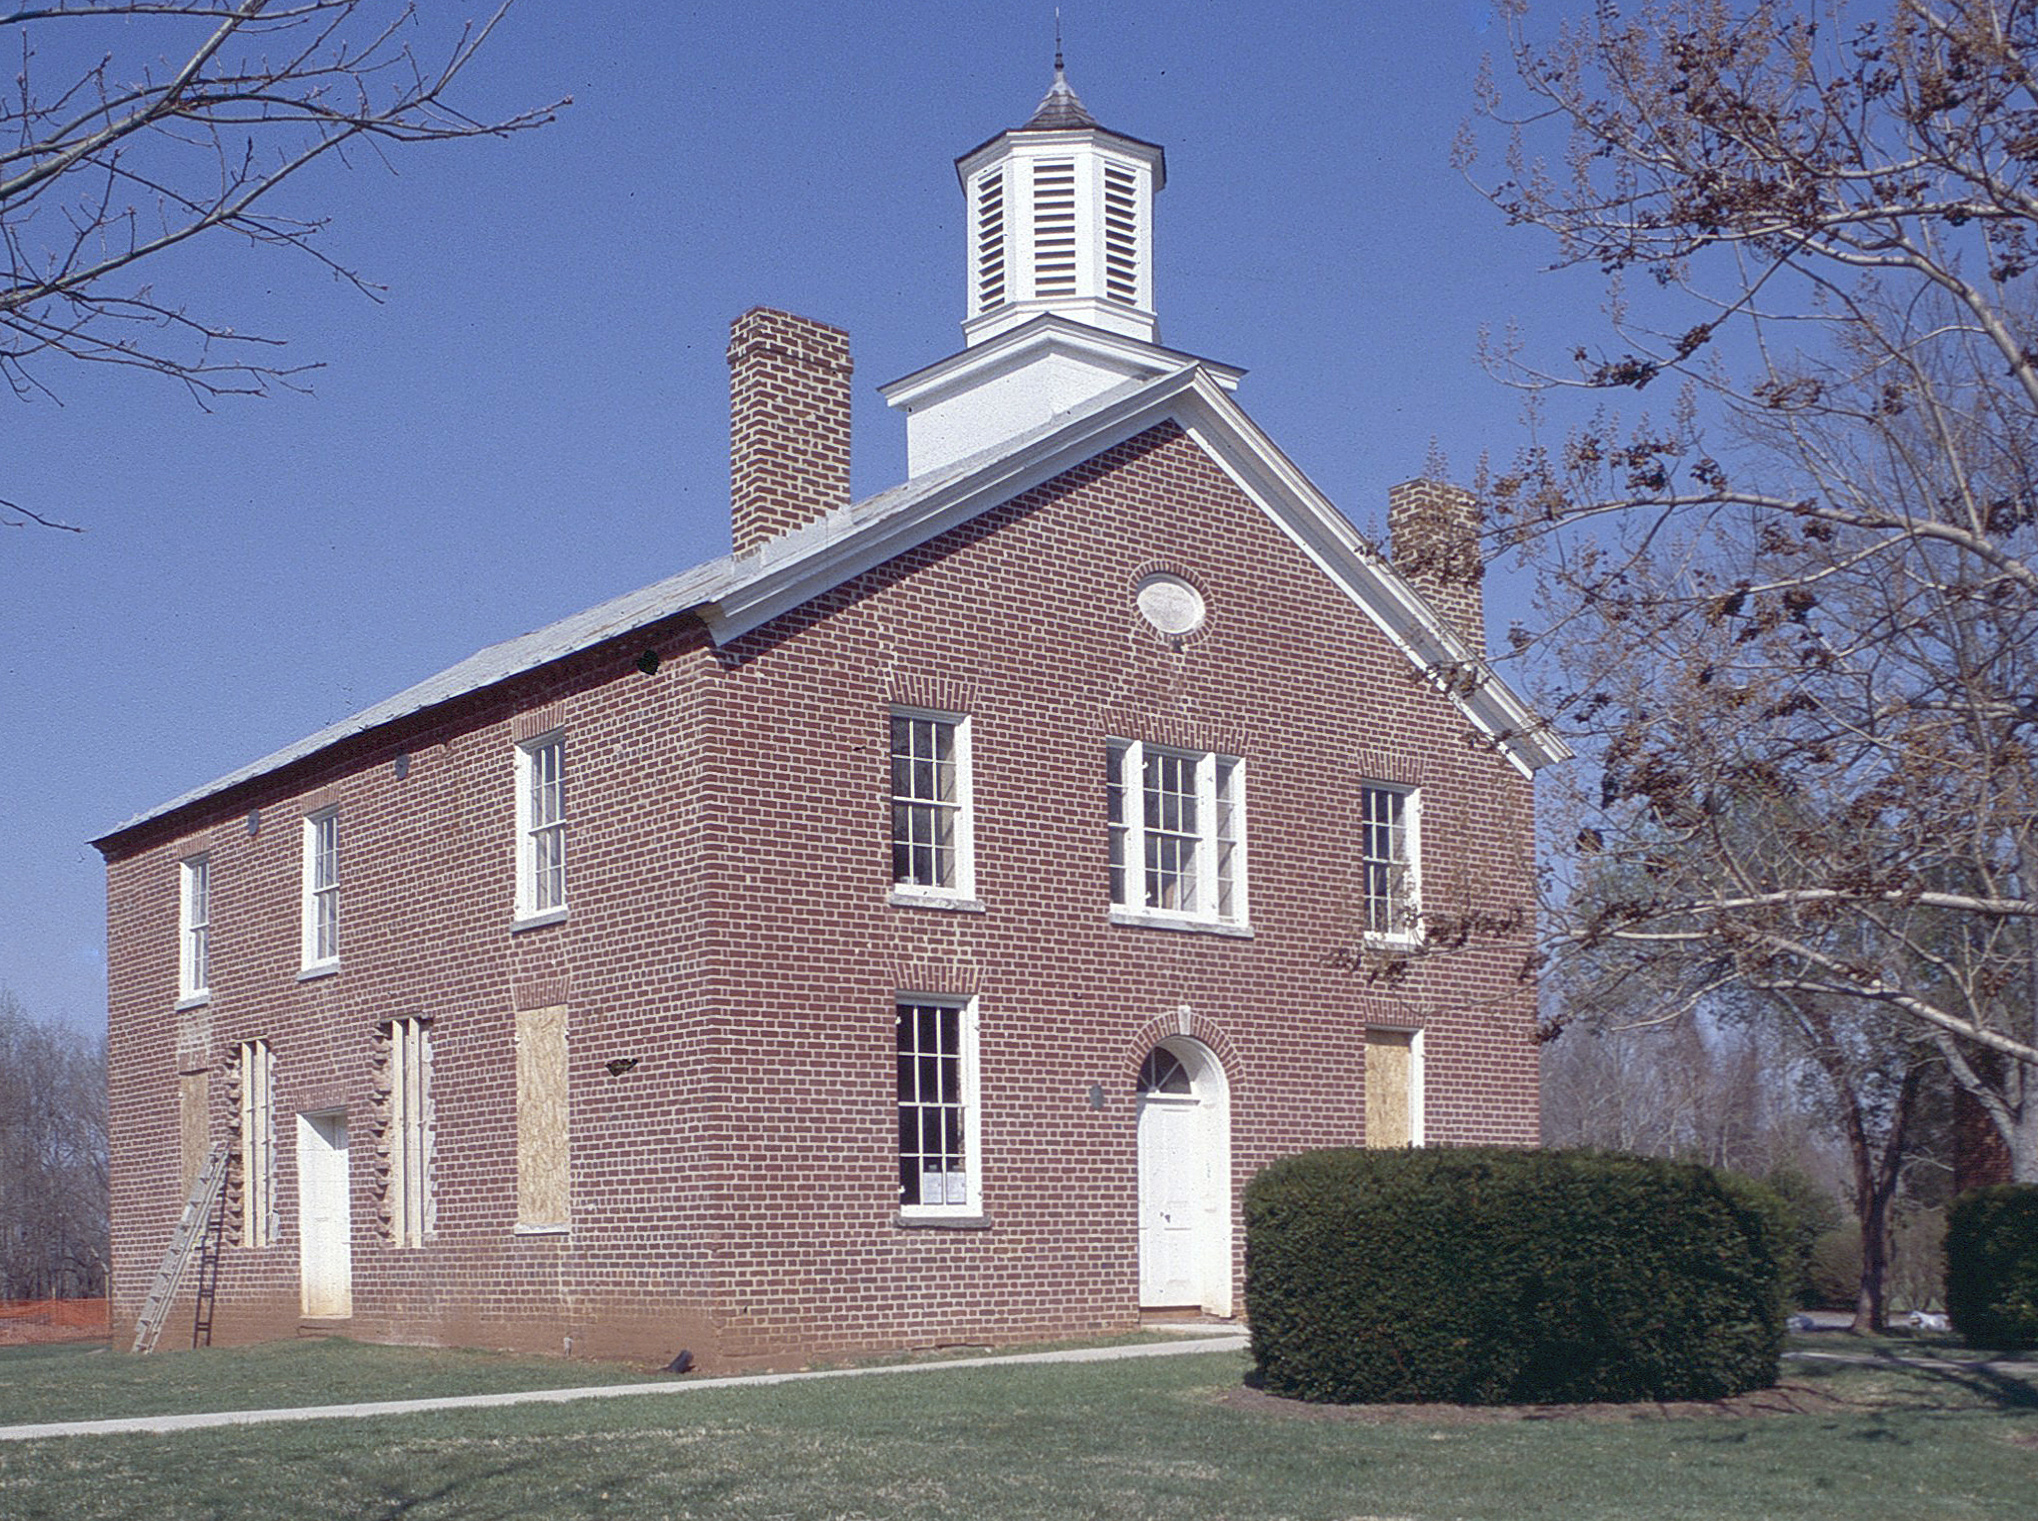 Brentsville Courthouse and Jail